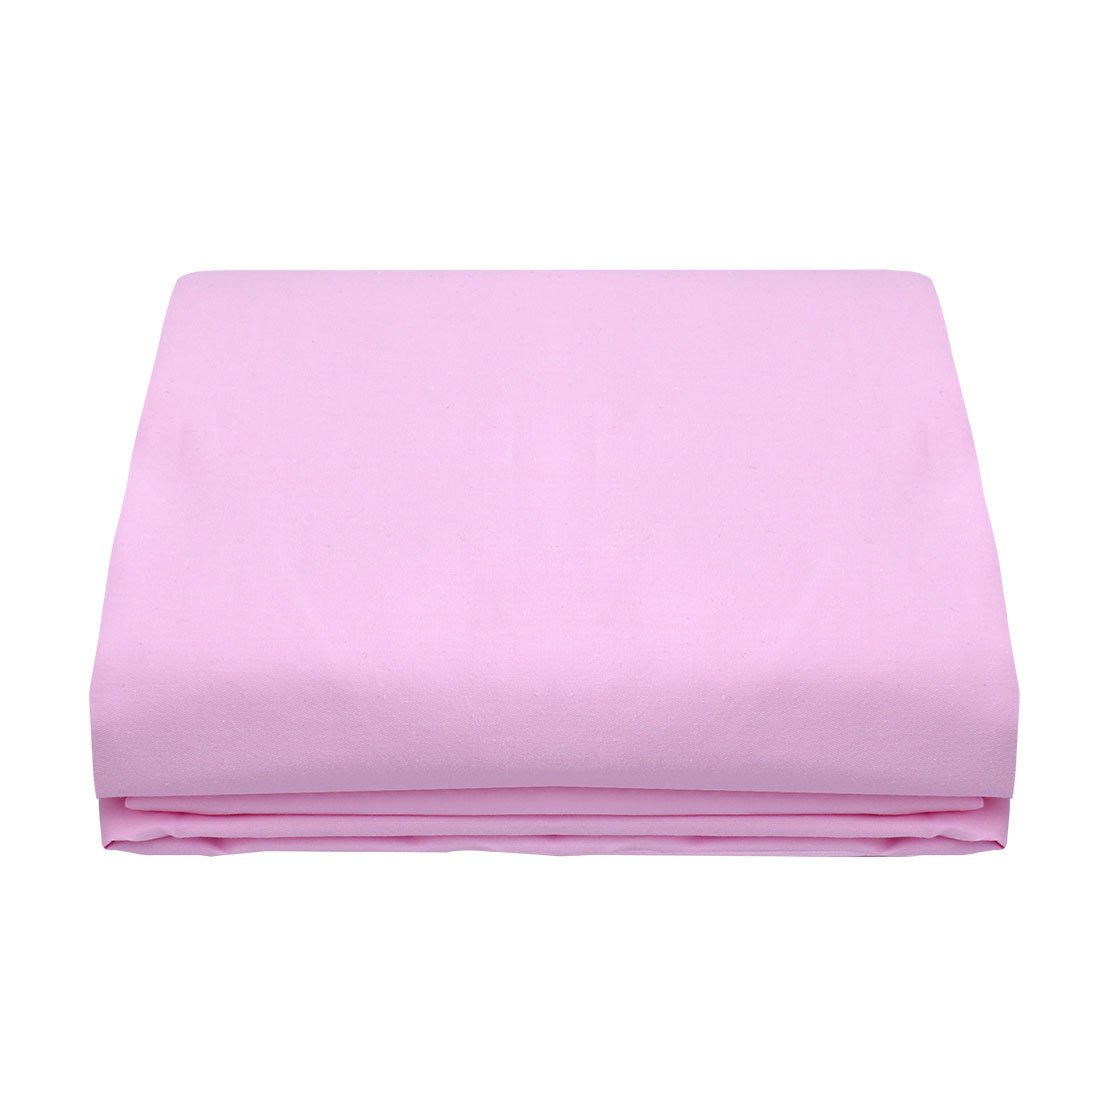 uxcell Queen Size Flat Top Bed Sheet Only - 300 Thread Count Egyptian Cotton - Fitted Sheet Sold Separately for Set - Cool Feeling-100% Satisfaction Guarantee (1-Piece, Queen, Pink)(102 x 90Inch)